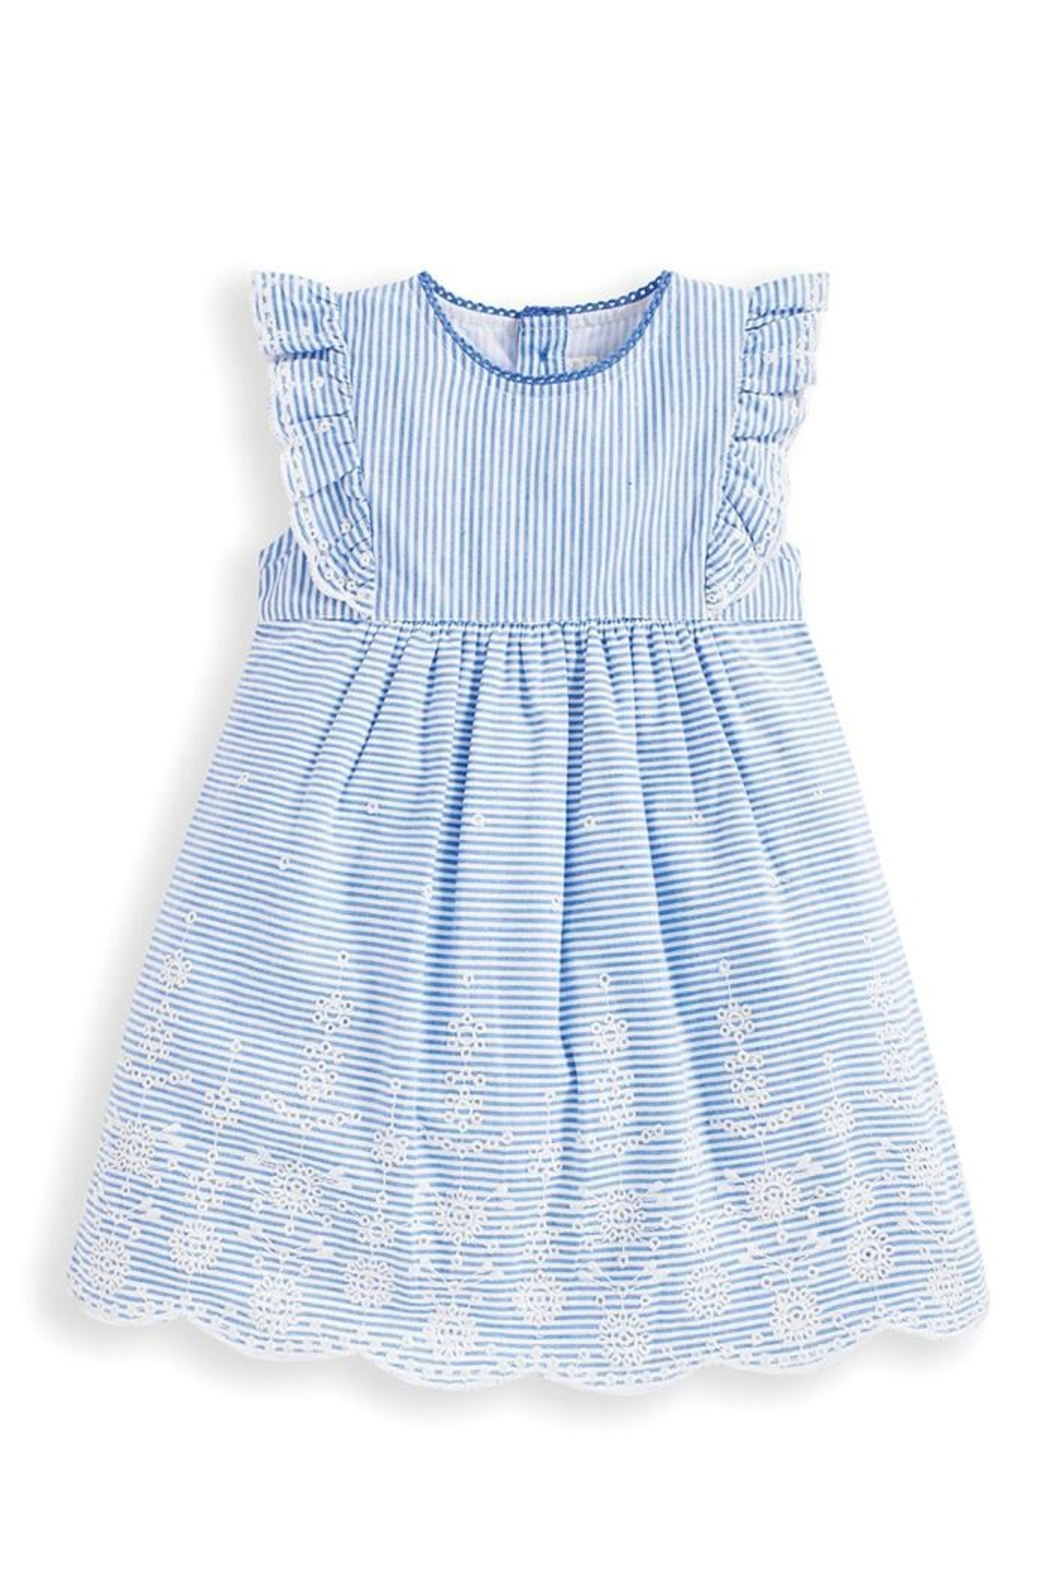 JoJo Maman Bebe Broderie Anglaise Dress - Front Cropped Image